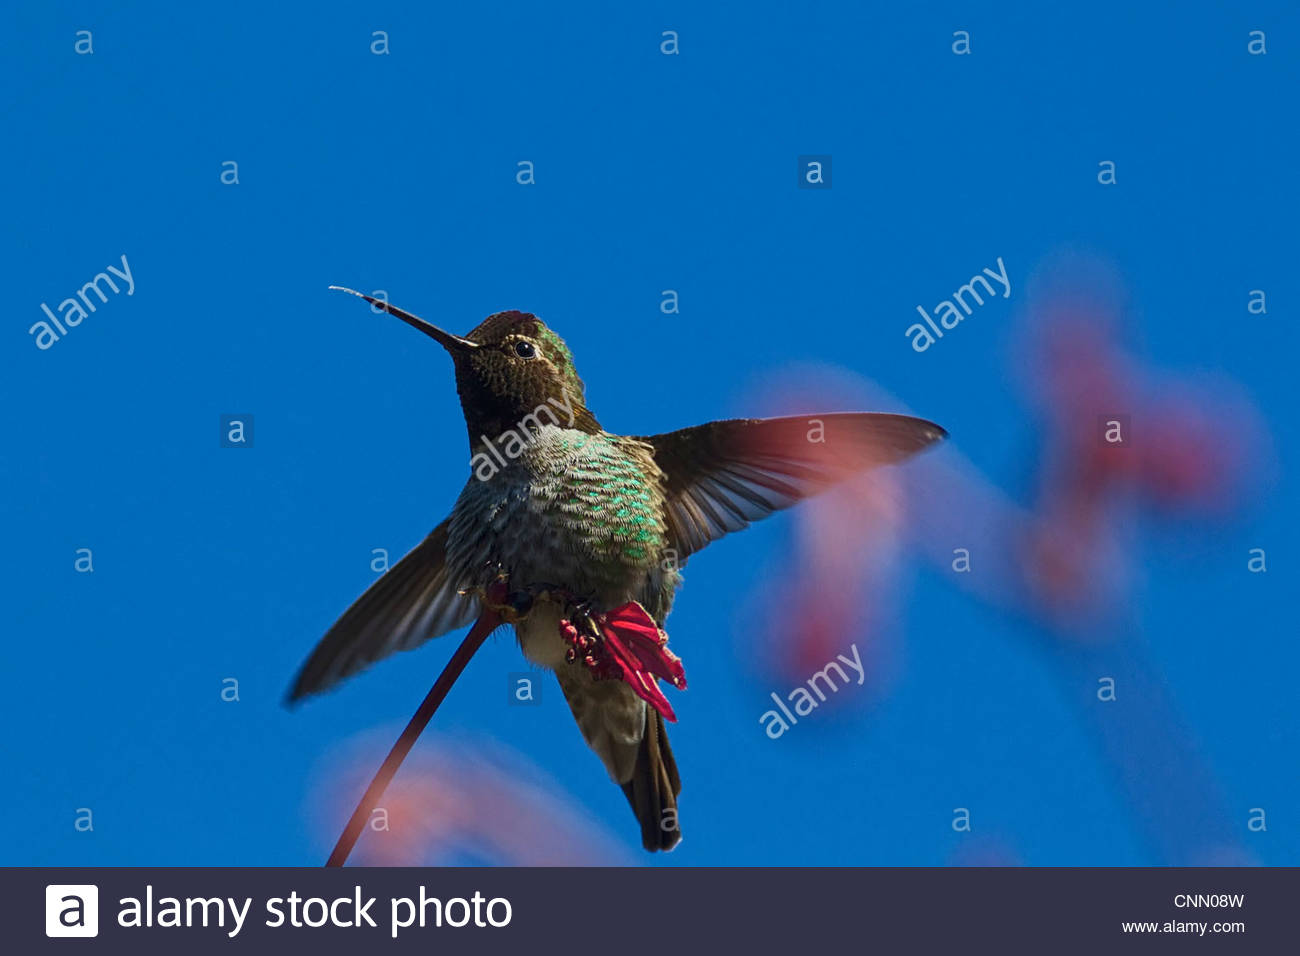 An Anna's hummingbird (Calypte anna) sticks its tongue out as it lands on a maple tree in early spring. - Stock Image